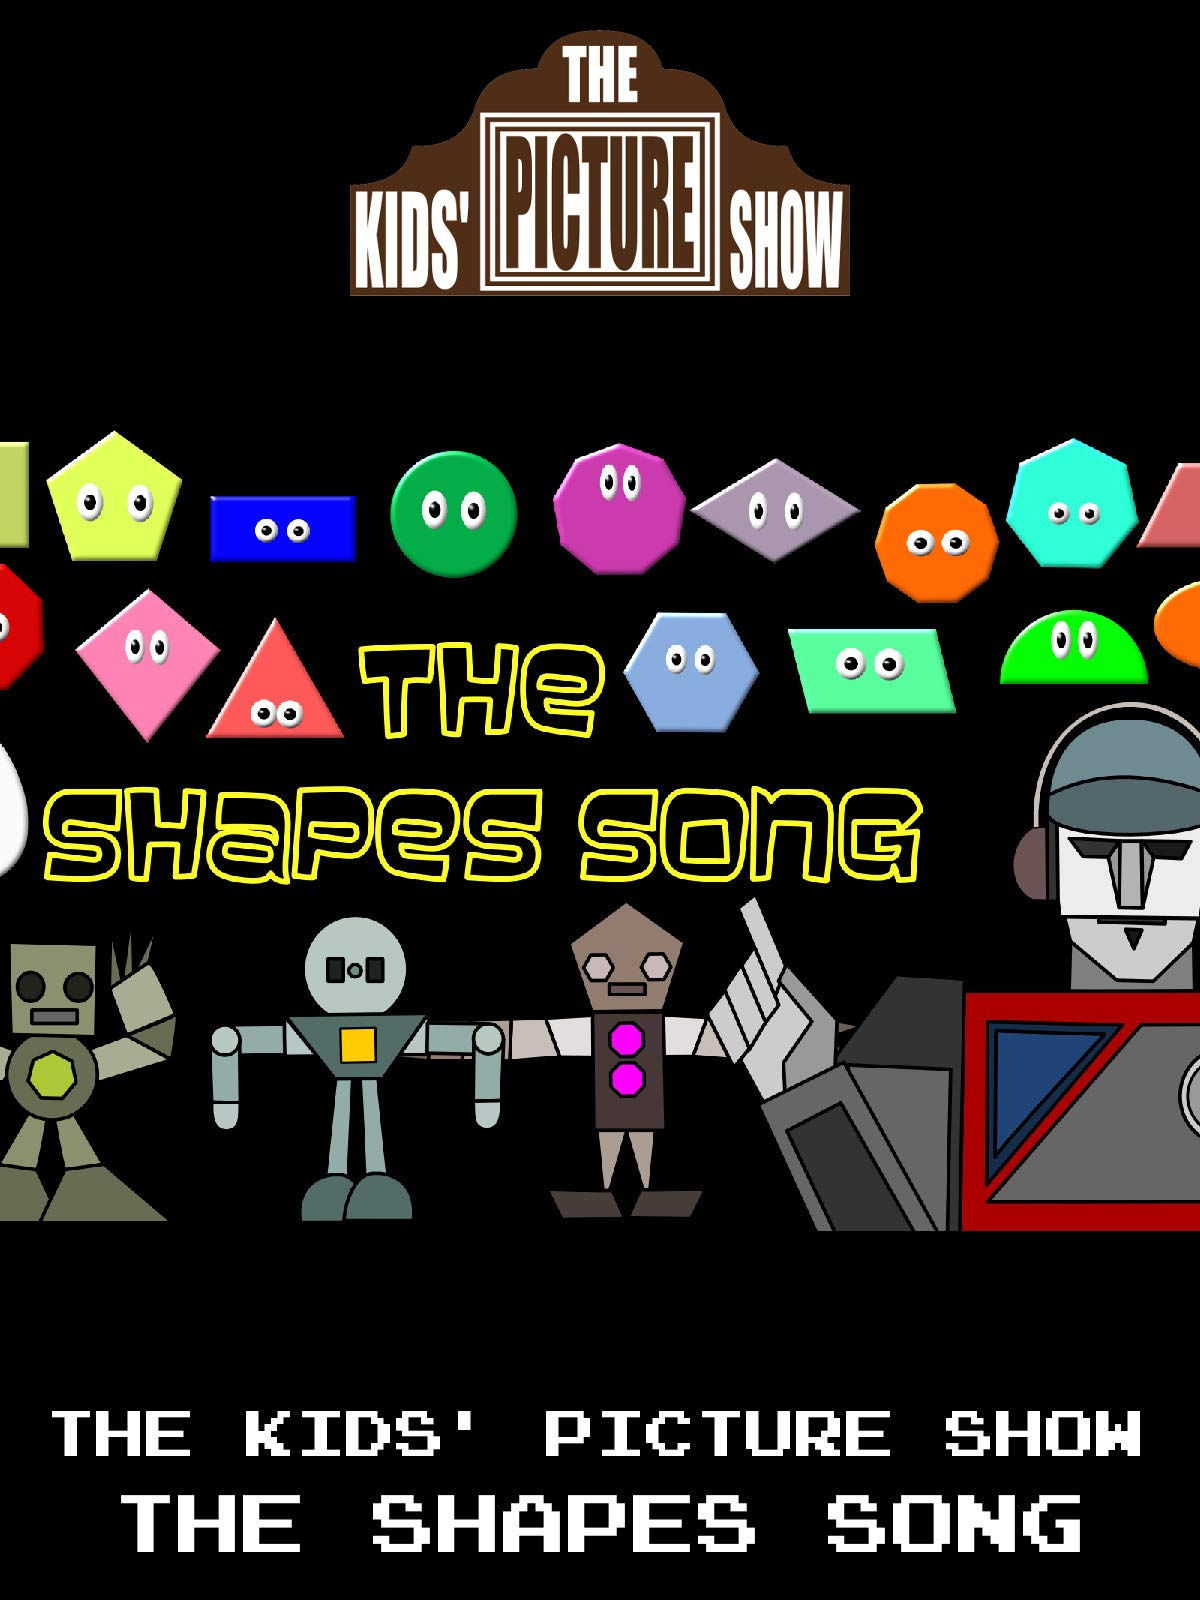 The Kids' Picture Show - The Shapes Song